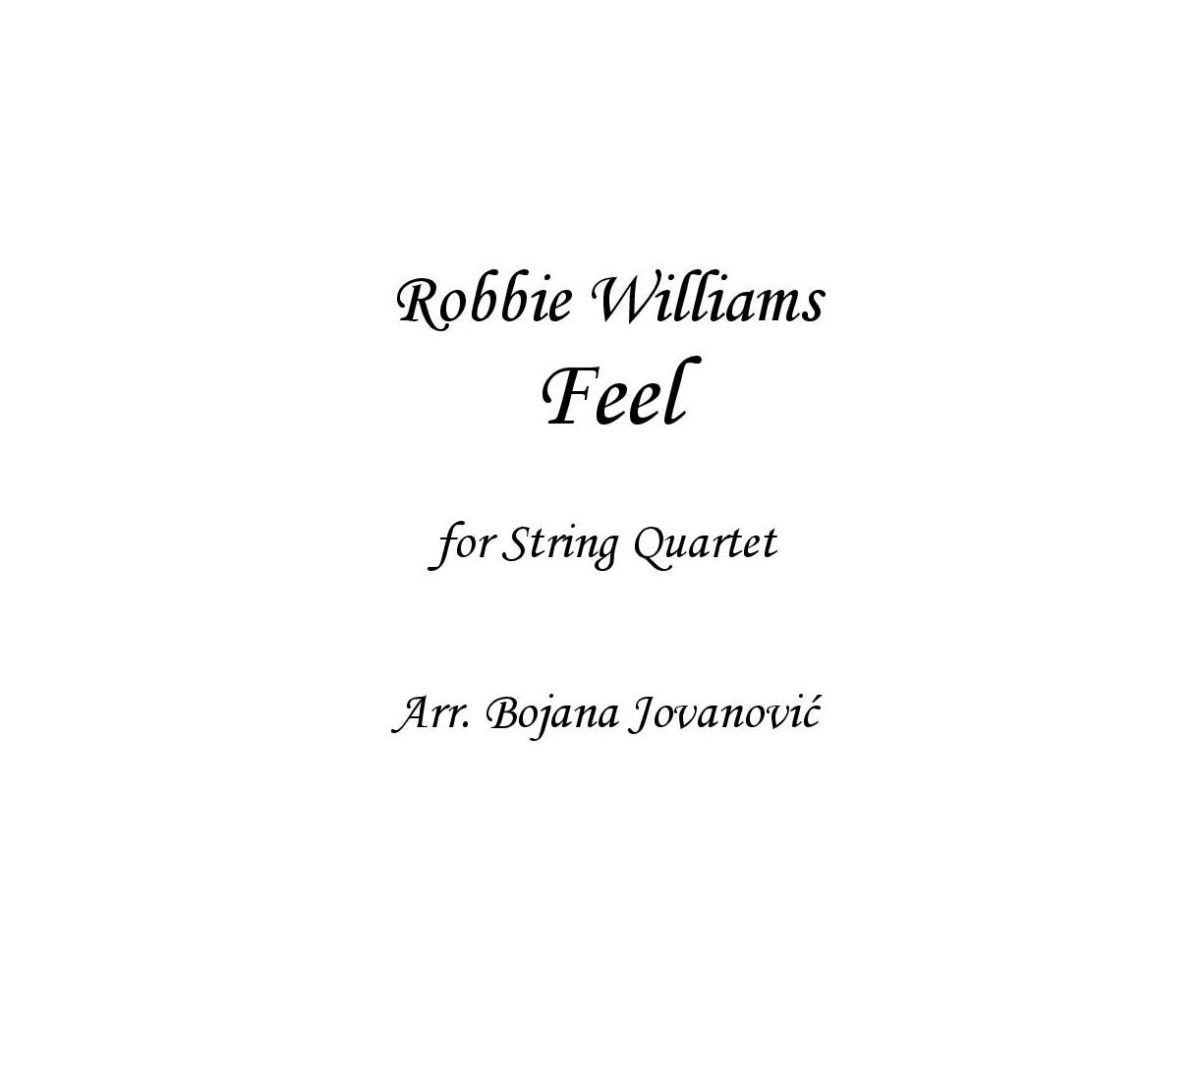 Feel (Robbie Williams) - Sheet Music